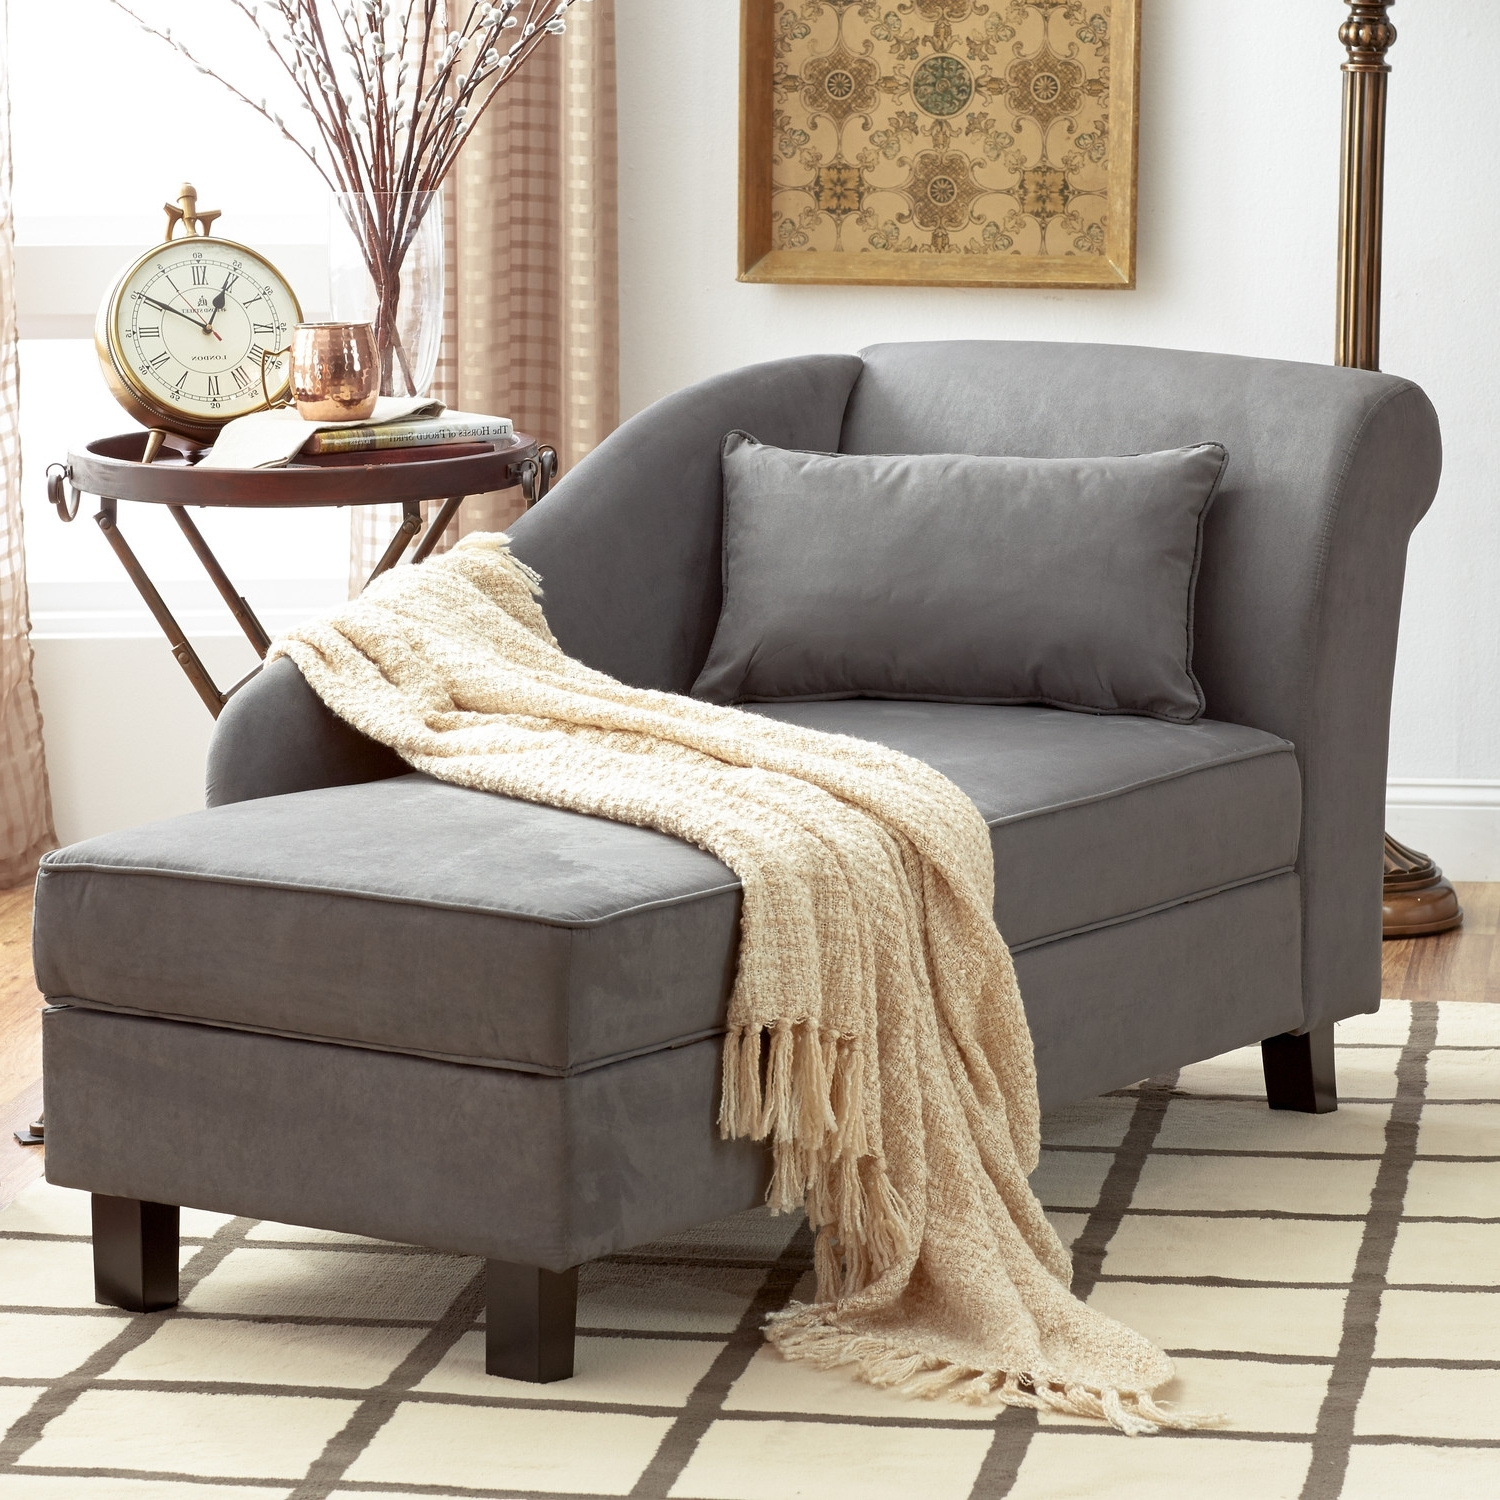 Well Liked Small Chaise Lounge Chairs For Bedroom With Regard To Small Chaise Lounge Chair For Bedroom • Lounge Chairs Ideas (View 15 of 15)